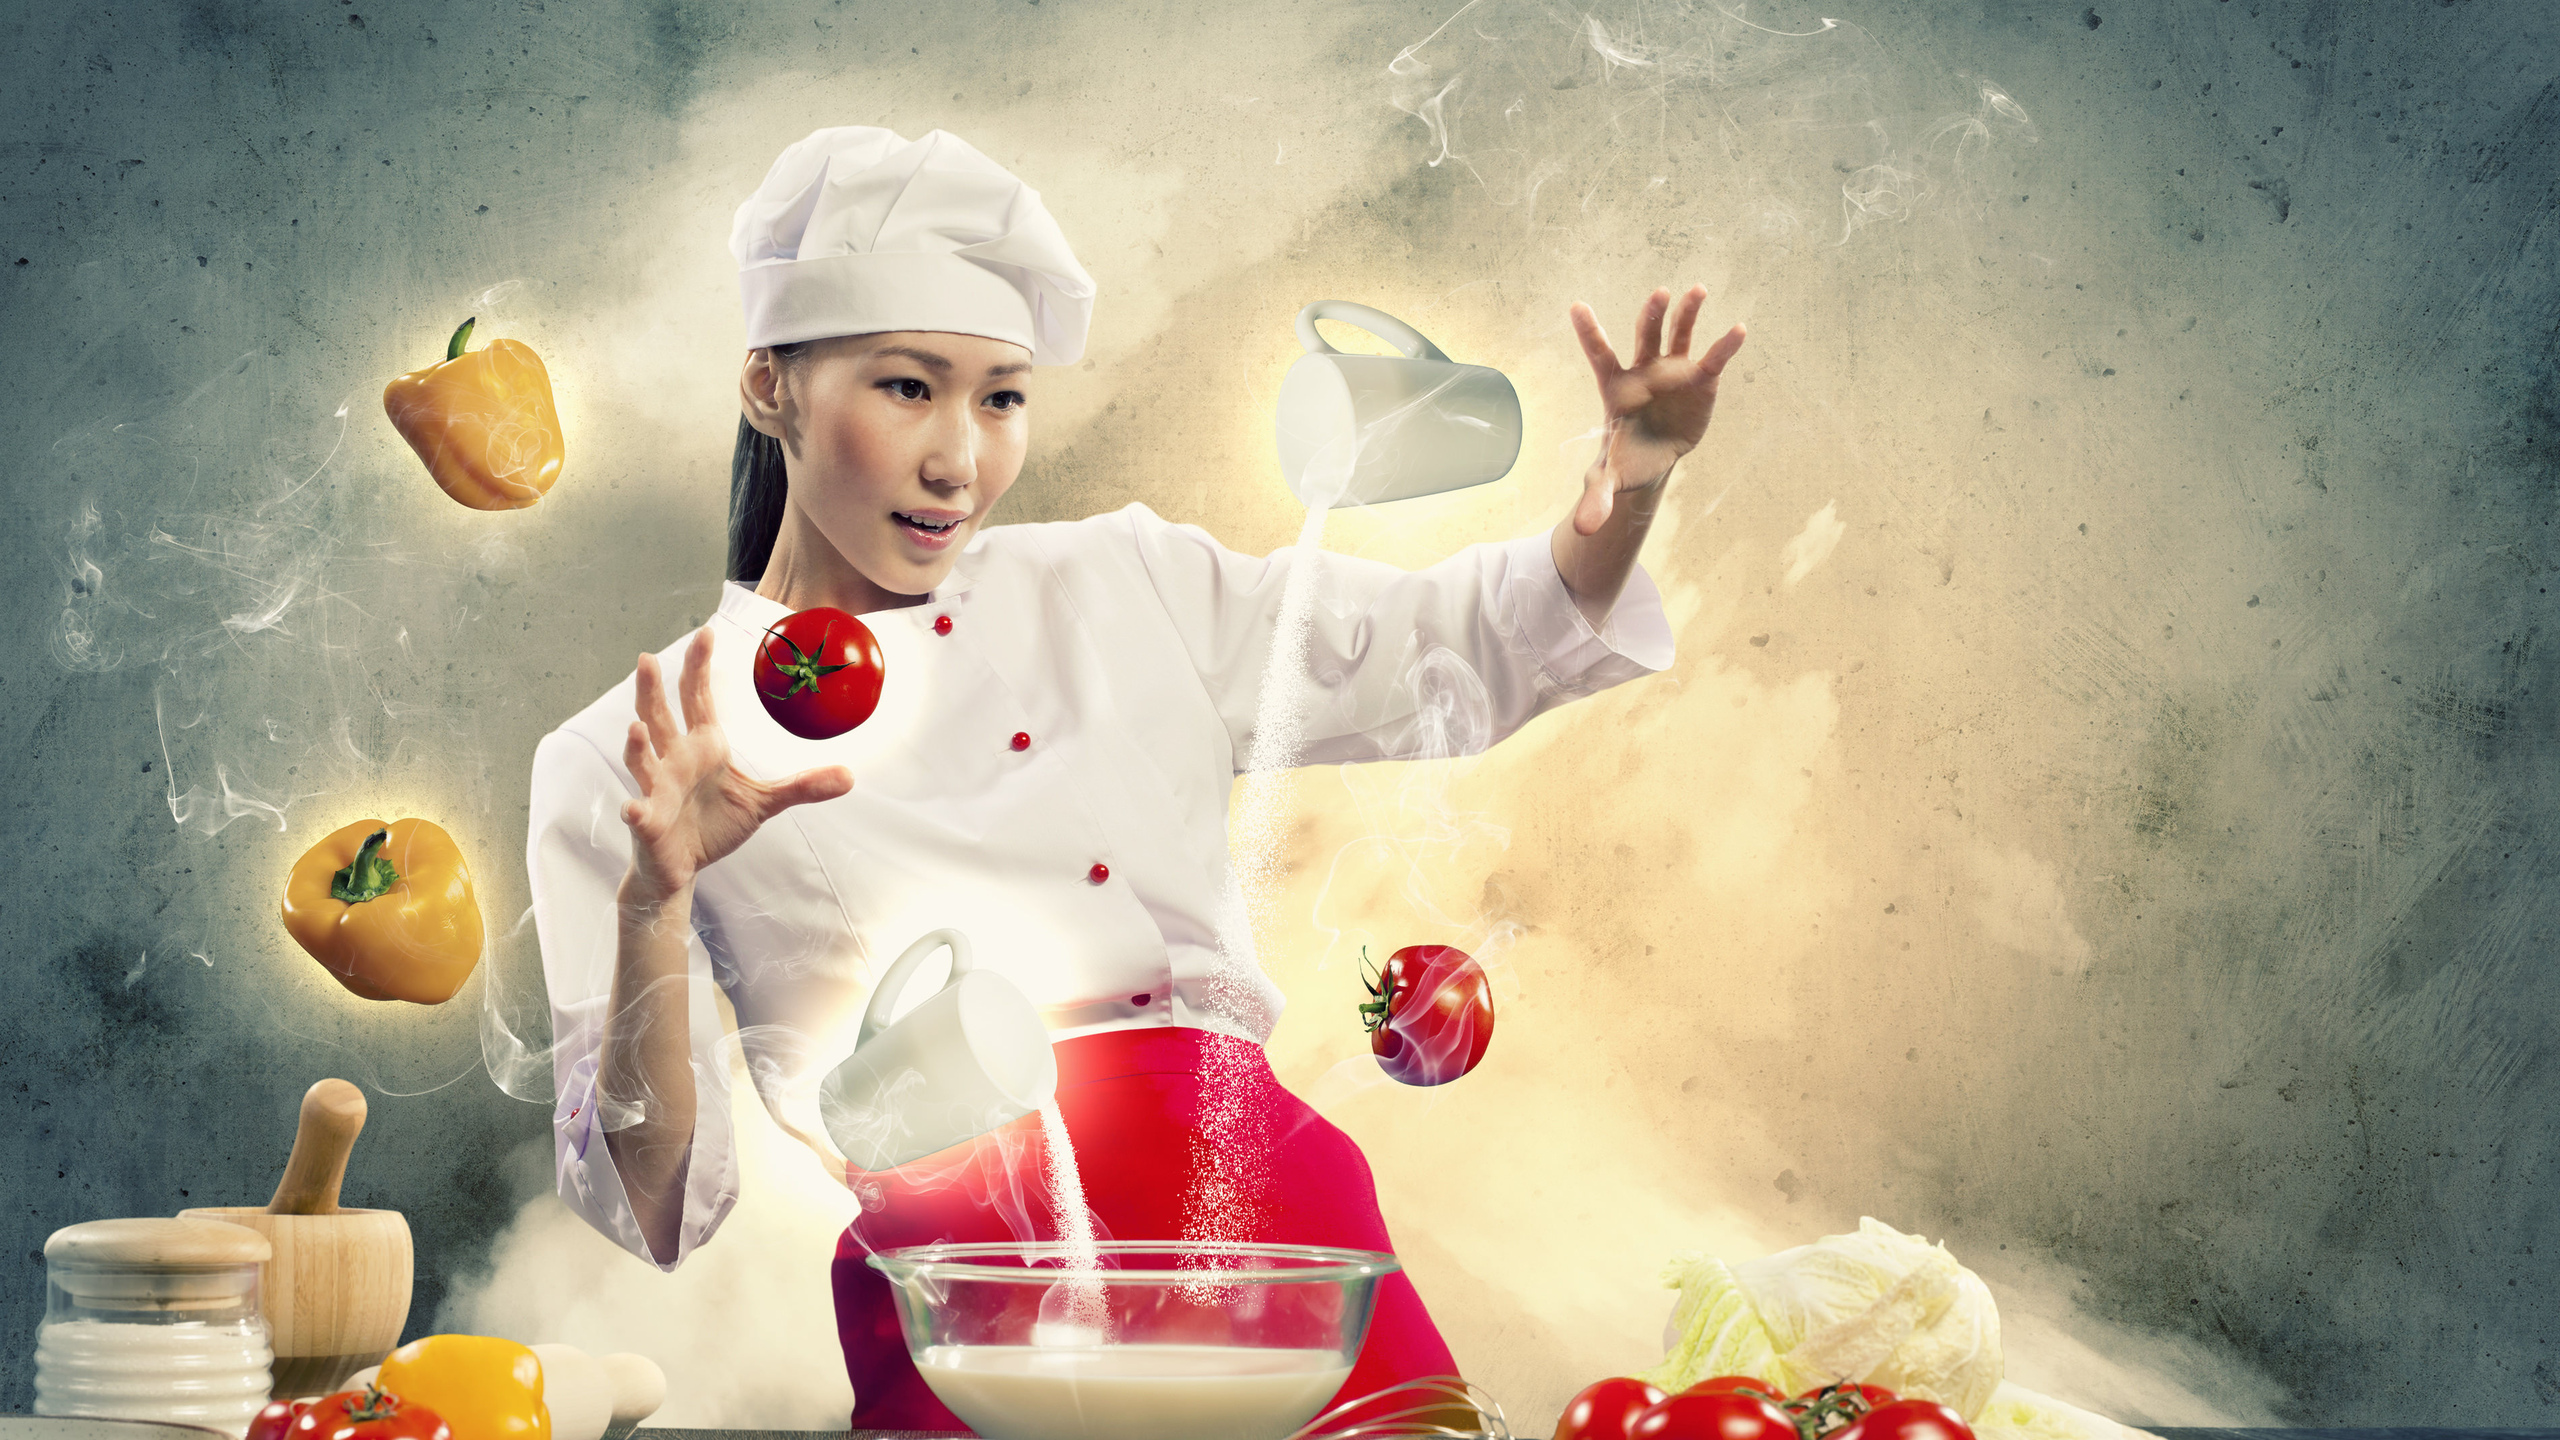 Cooking Backgrounds Download 2560x1440